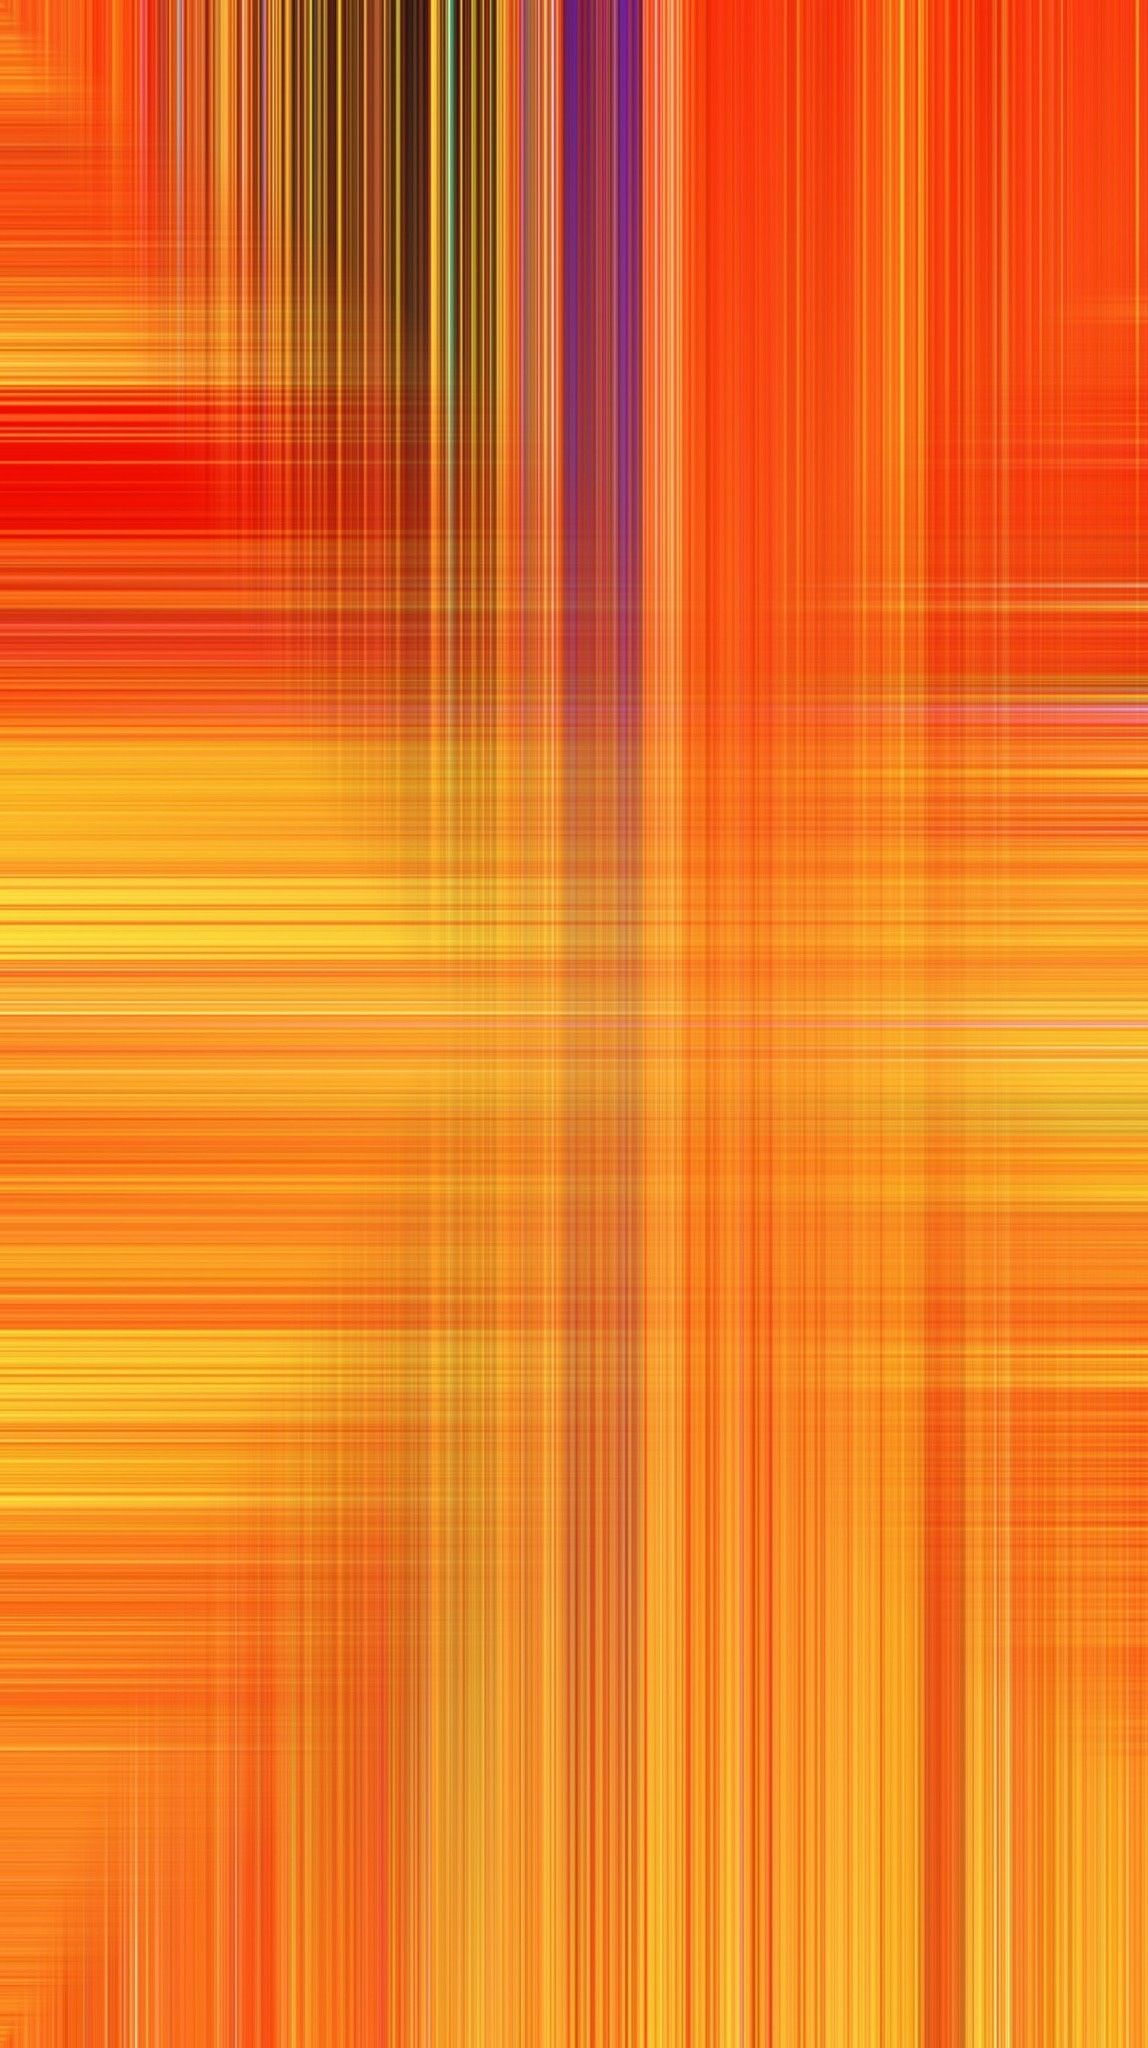 Red Orange Yellow Crosspatch Wallpaper Orange Wallpaper Colorful Wallpaper Phone Wallpaper